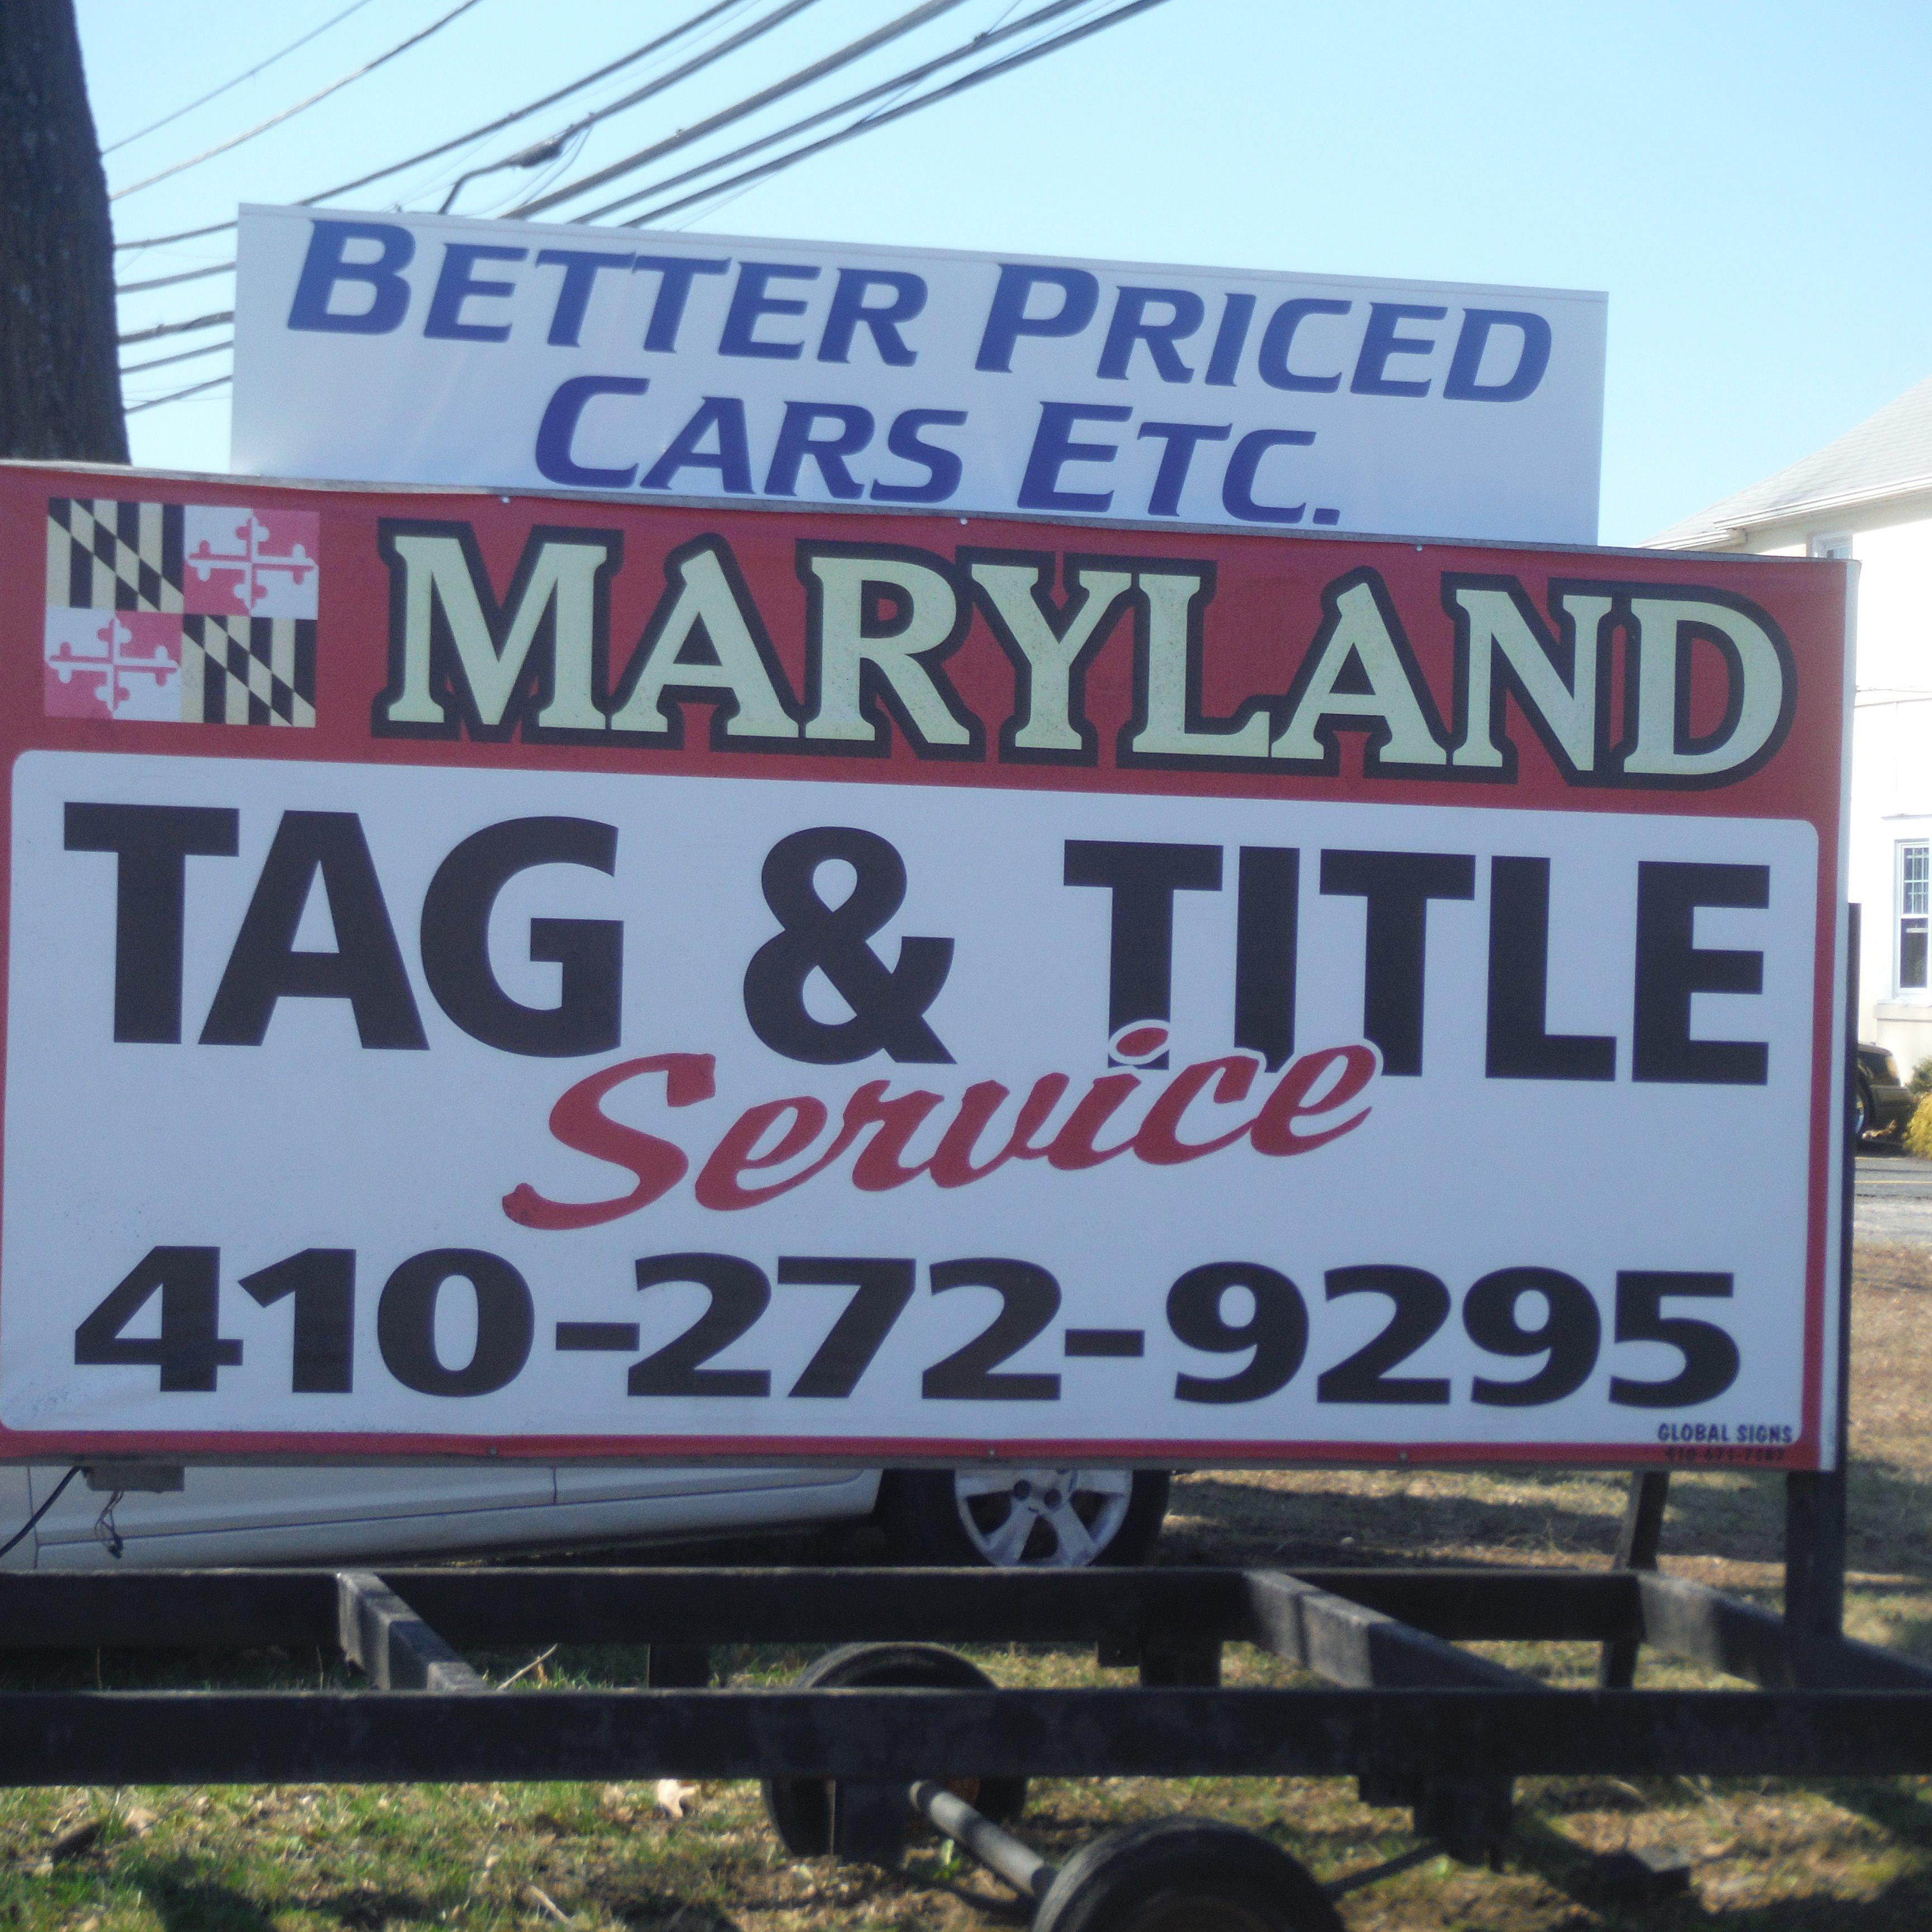 Maryland Tag & Title Services